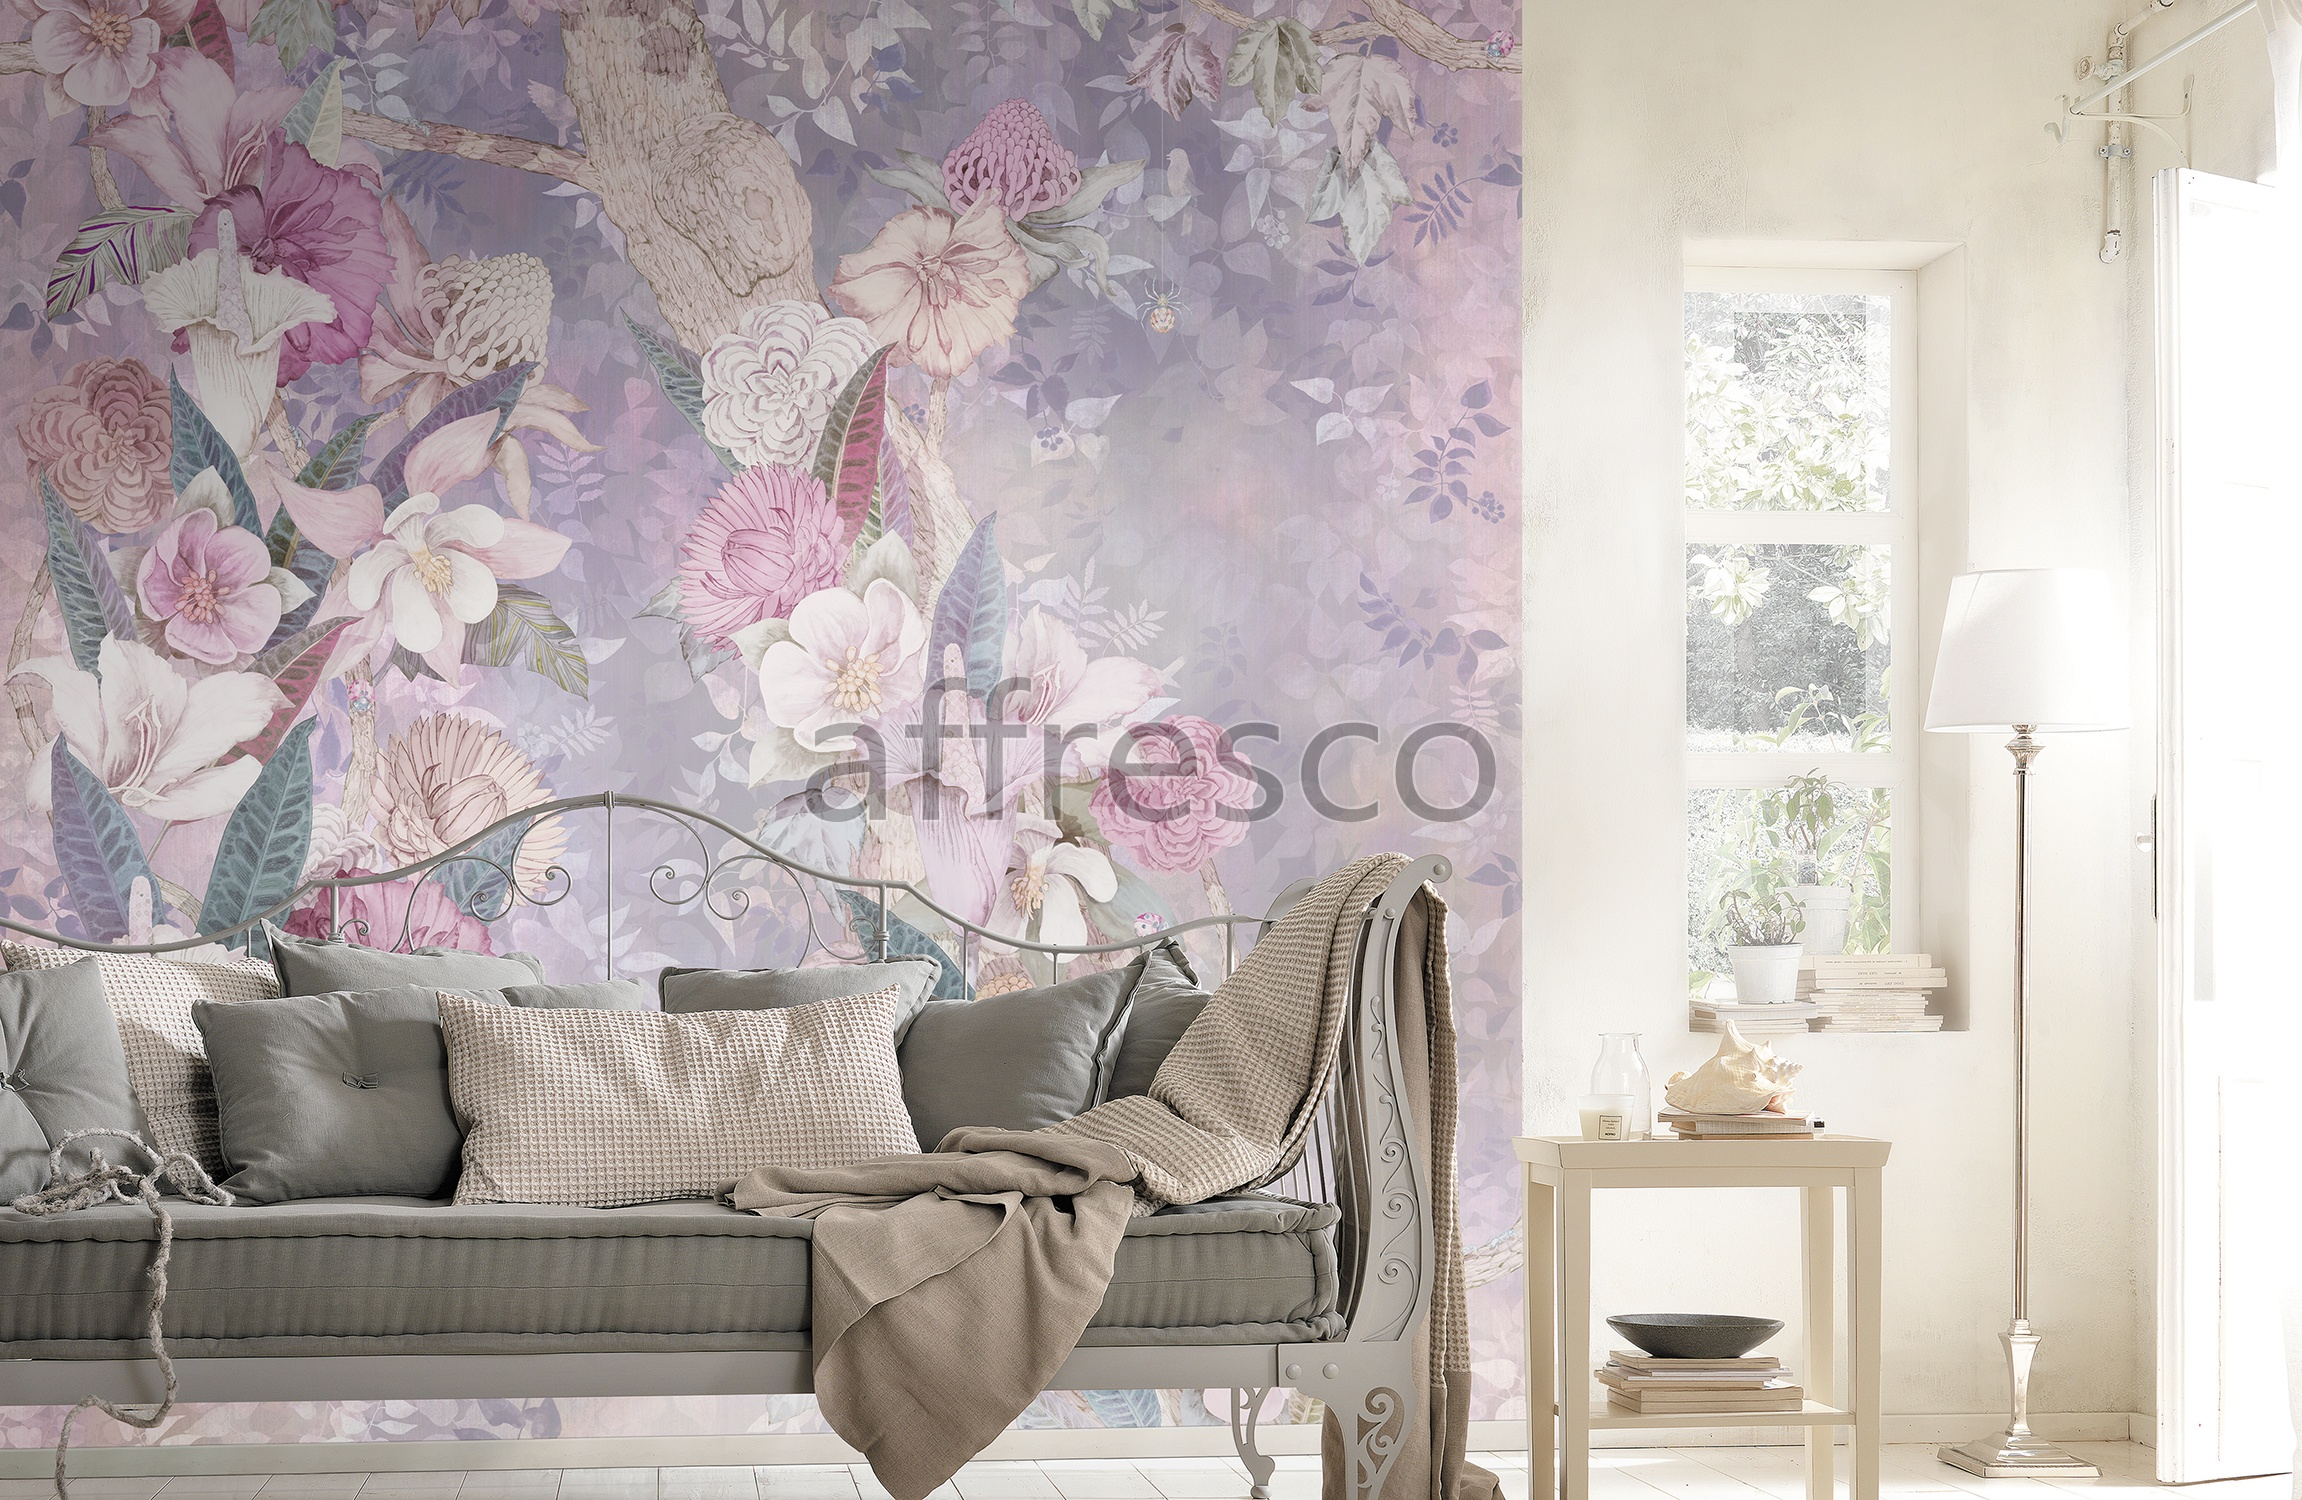 Handmade wallpaper, Handmade wallpaper | On the free branches